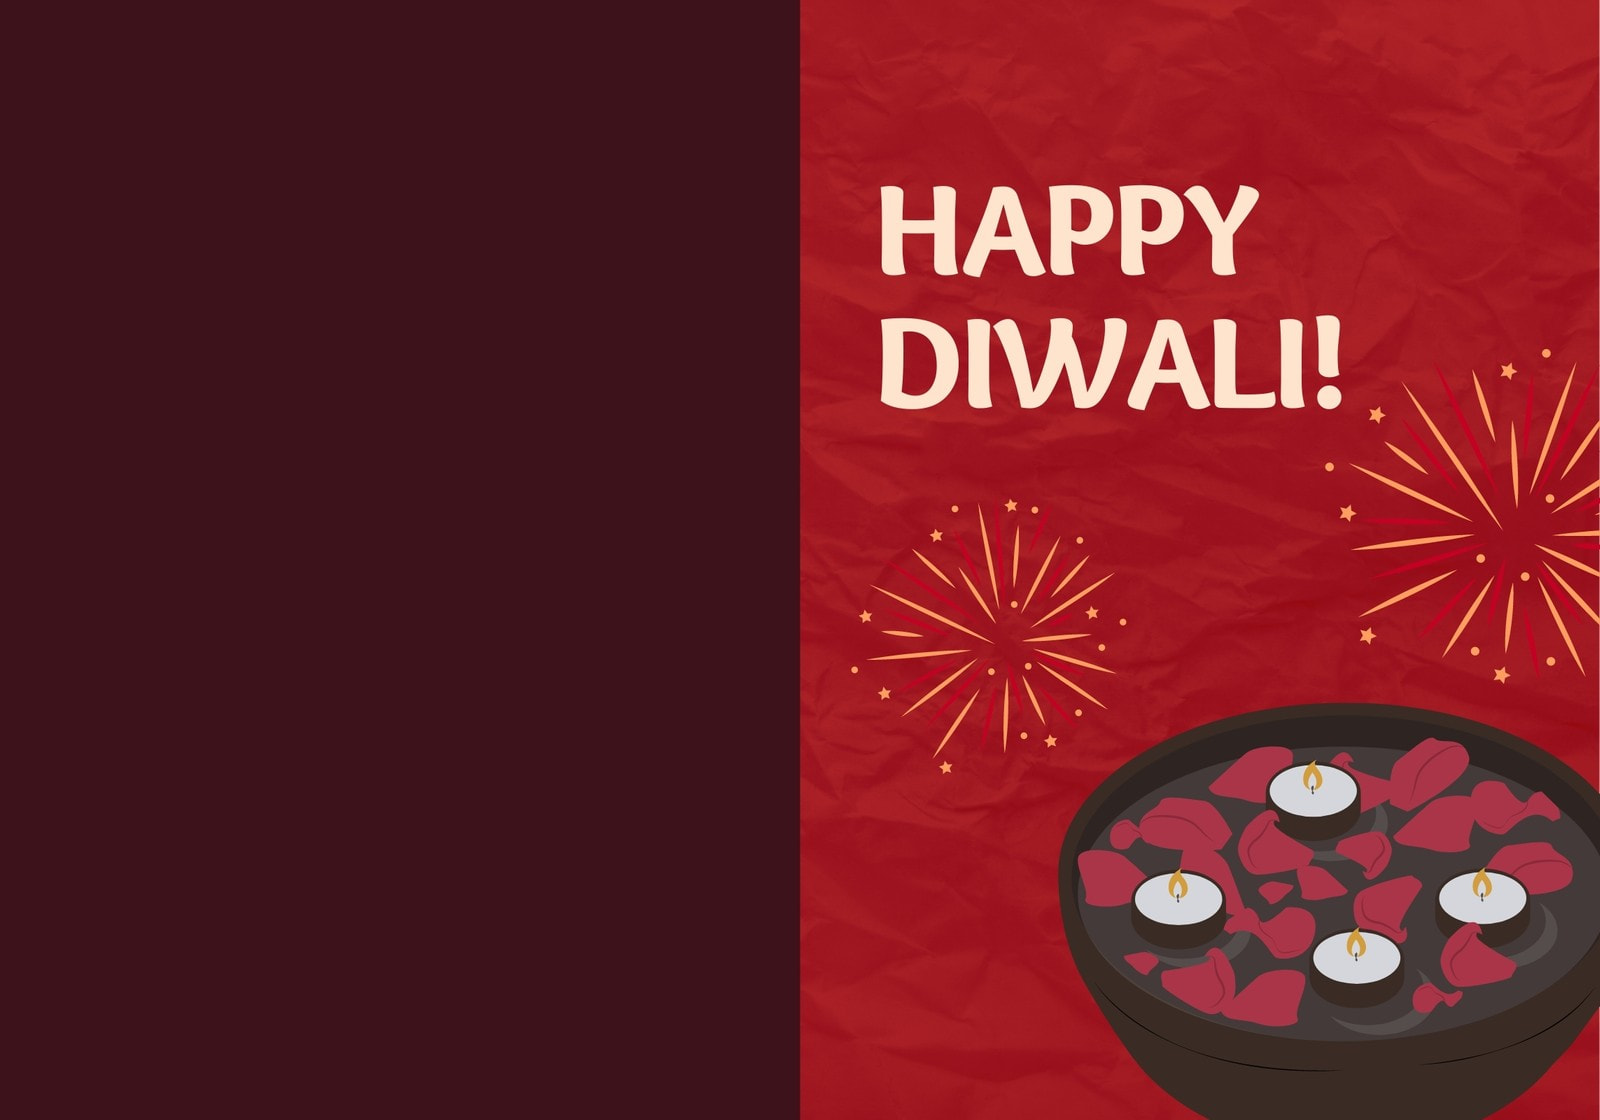 Design Your Diwali Greeting Cards Online (for Free!) - Canva